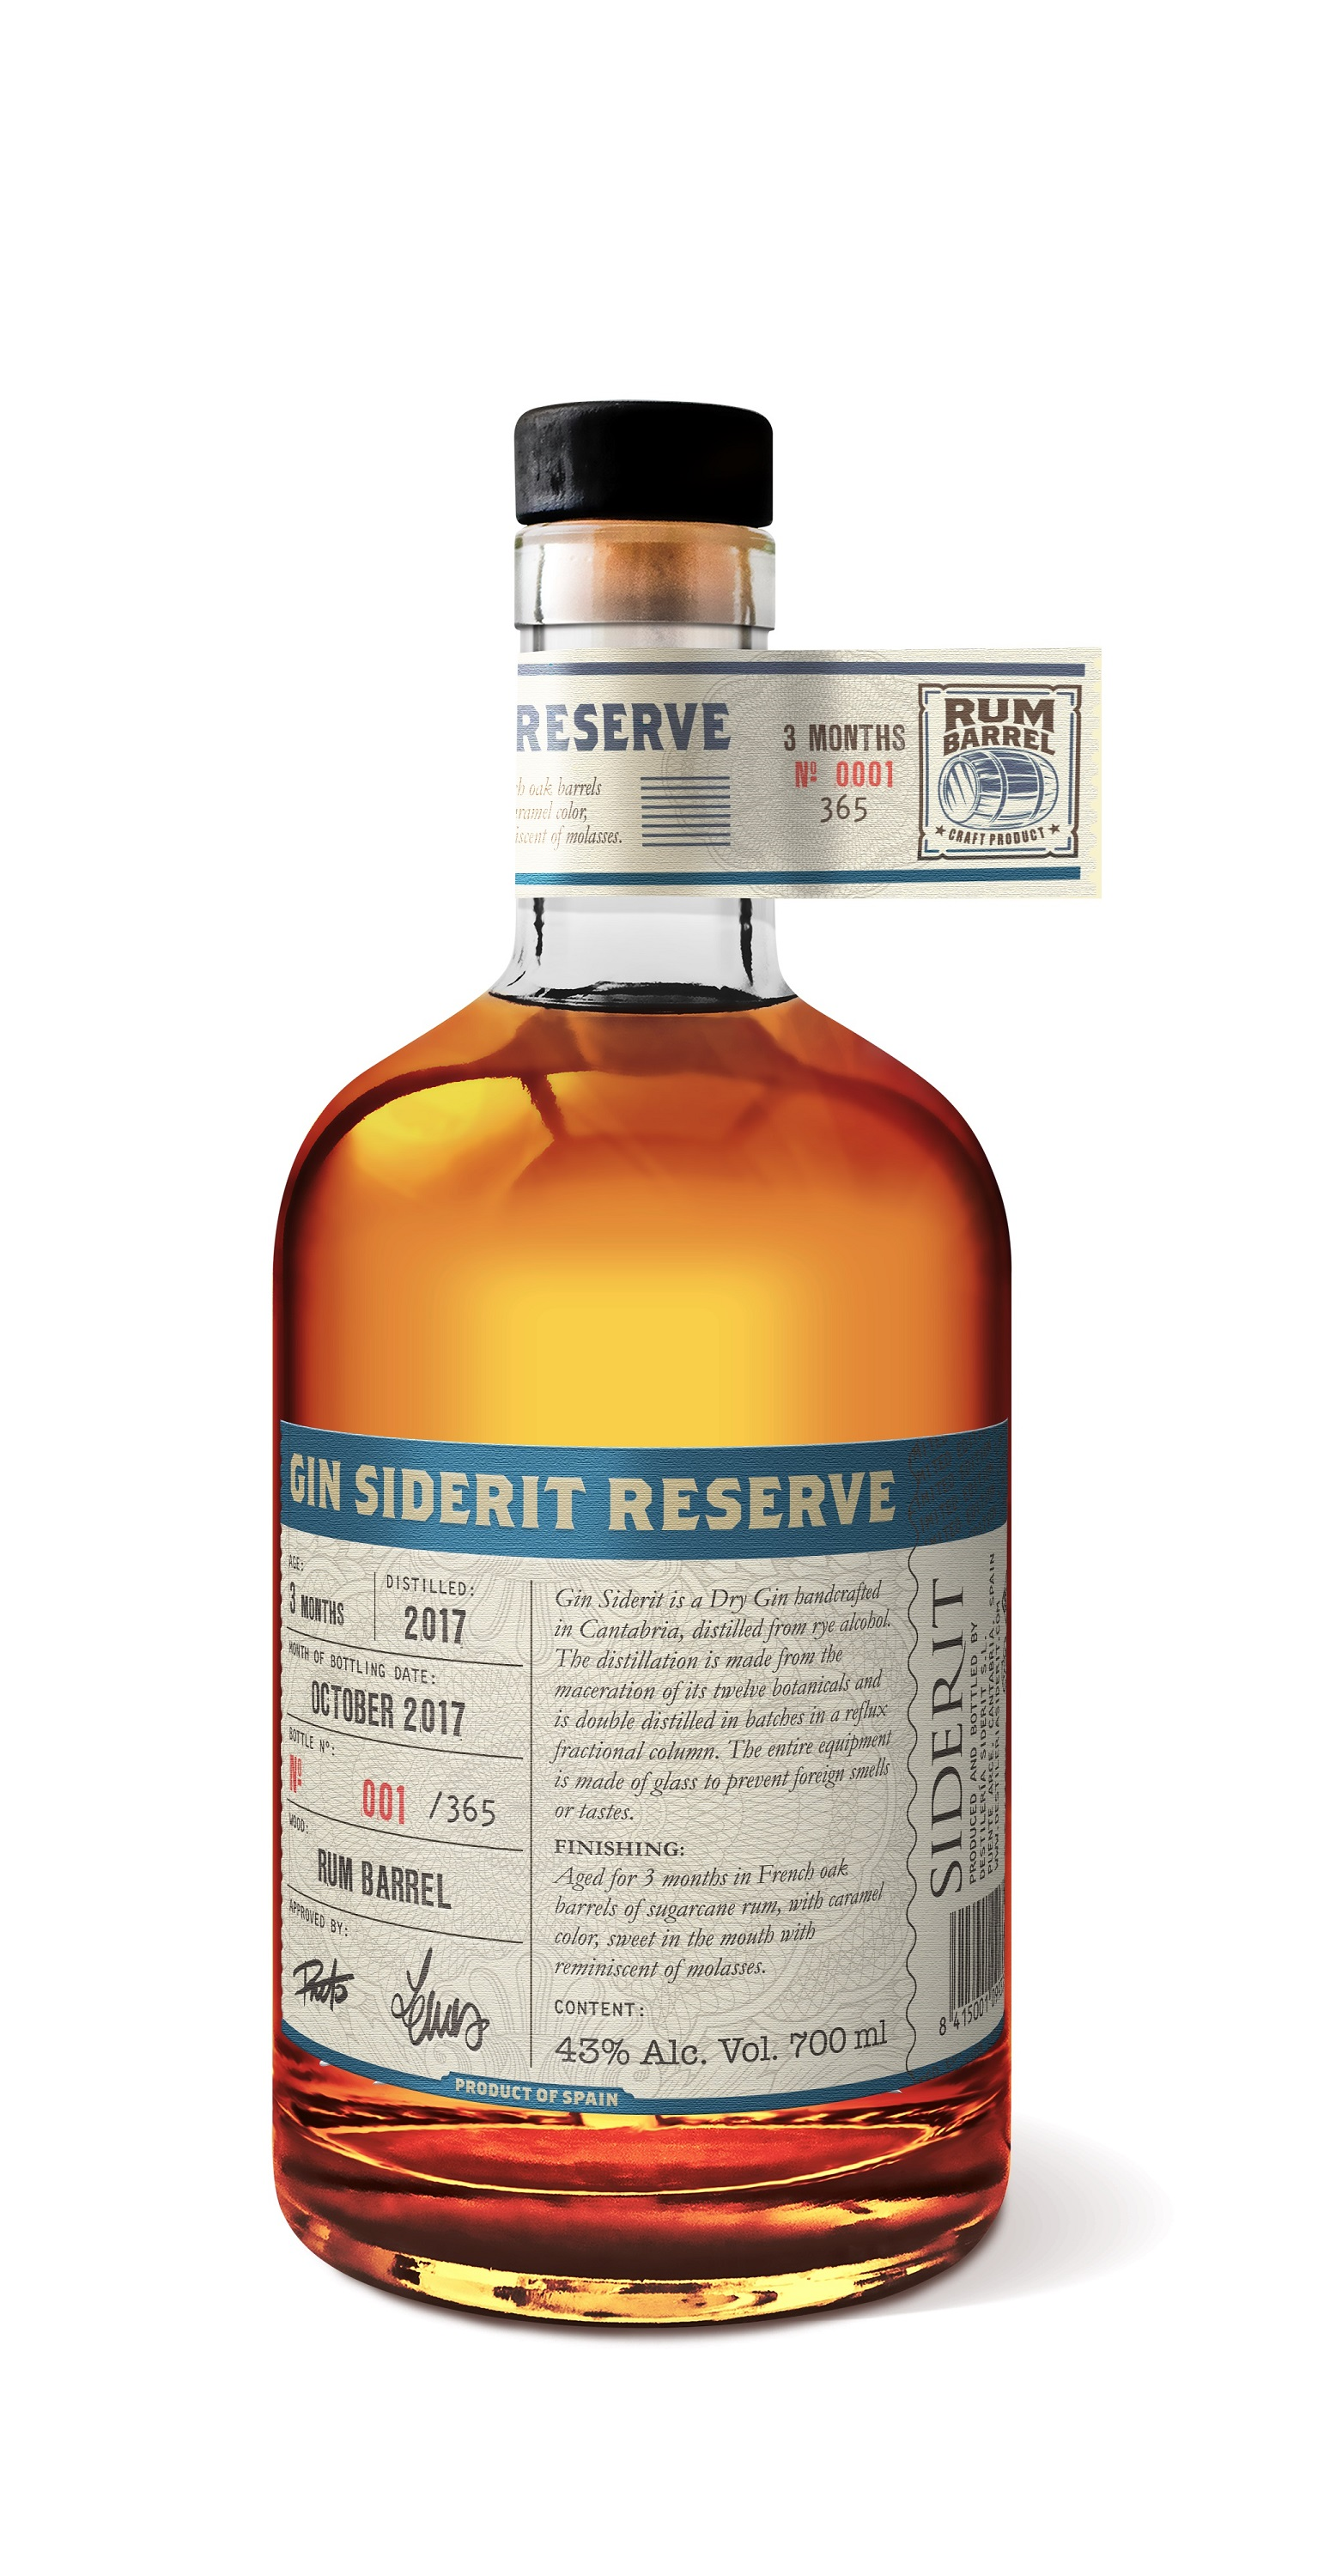 Gin Reserve Siderit aged in Rum barrel, 43% Alc., 700ml